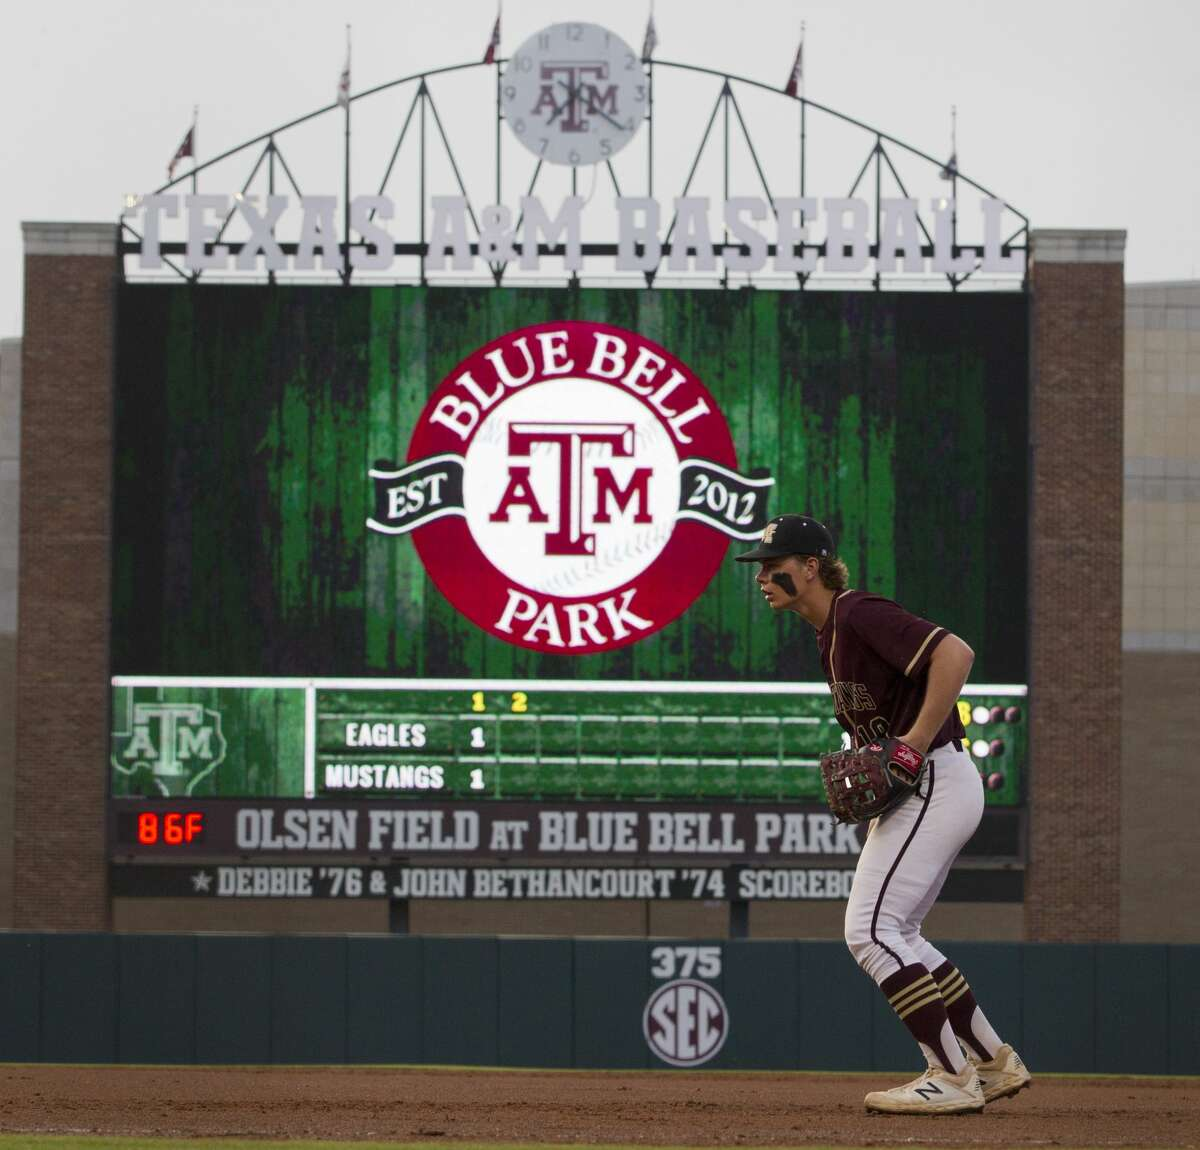 Texas A&M's Blue Bell Park will not be in use for a while after the NCAA canceled all spring sports in the wake of the coronavirus pandemic.